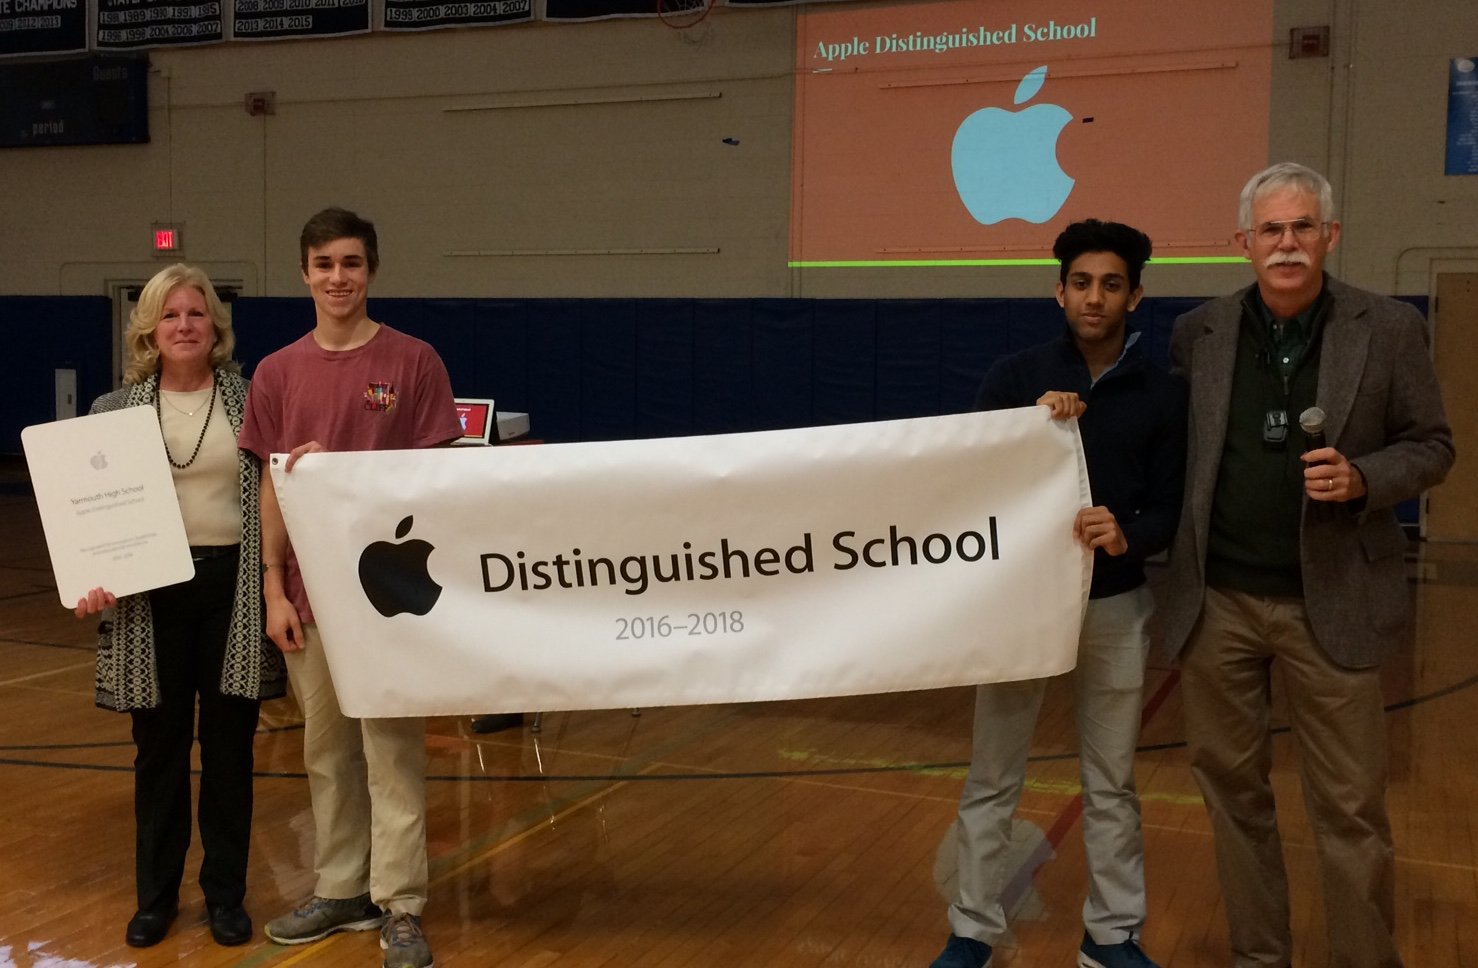 @jmoulton and @taramaker from Apple joined us to present the Apple Distinguished school award to Students #yhslearns https://t.co/FDernbimvP